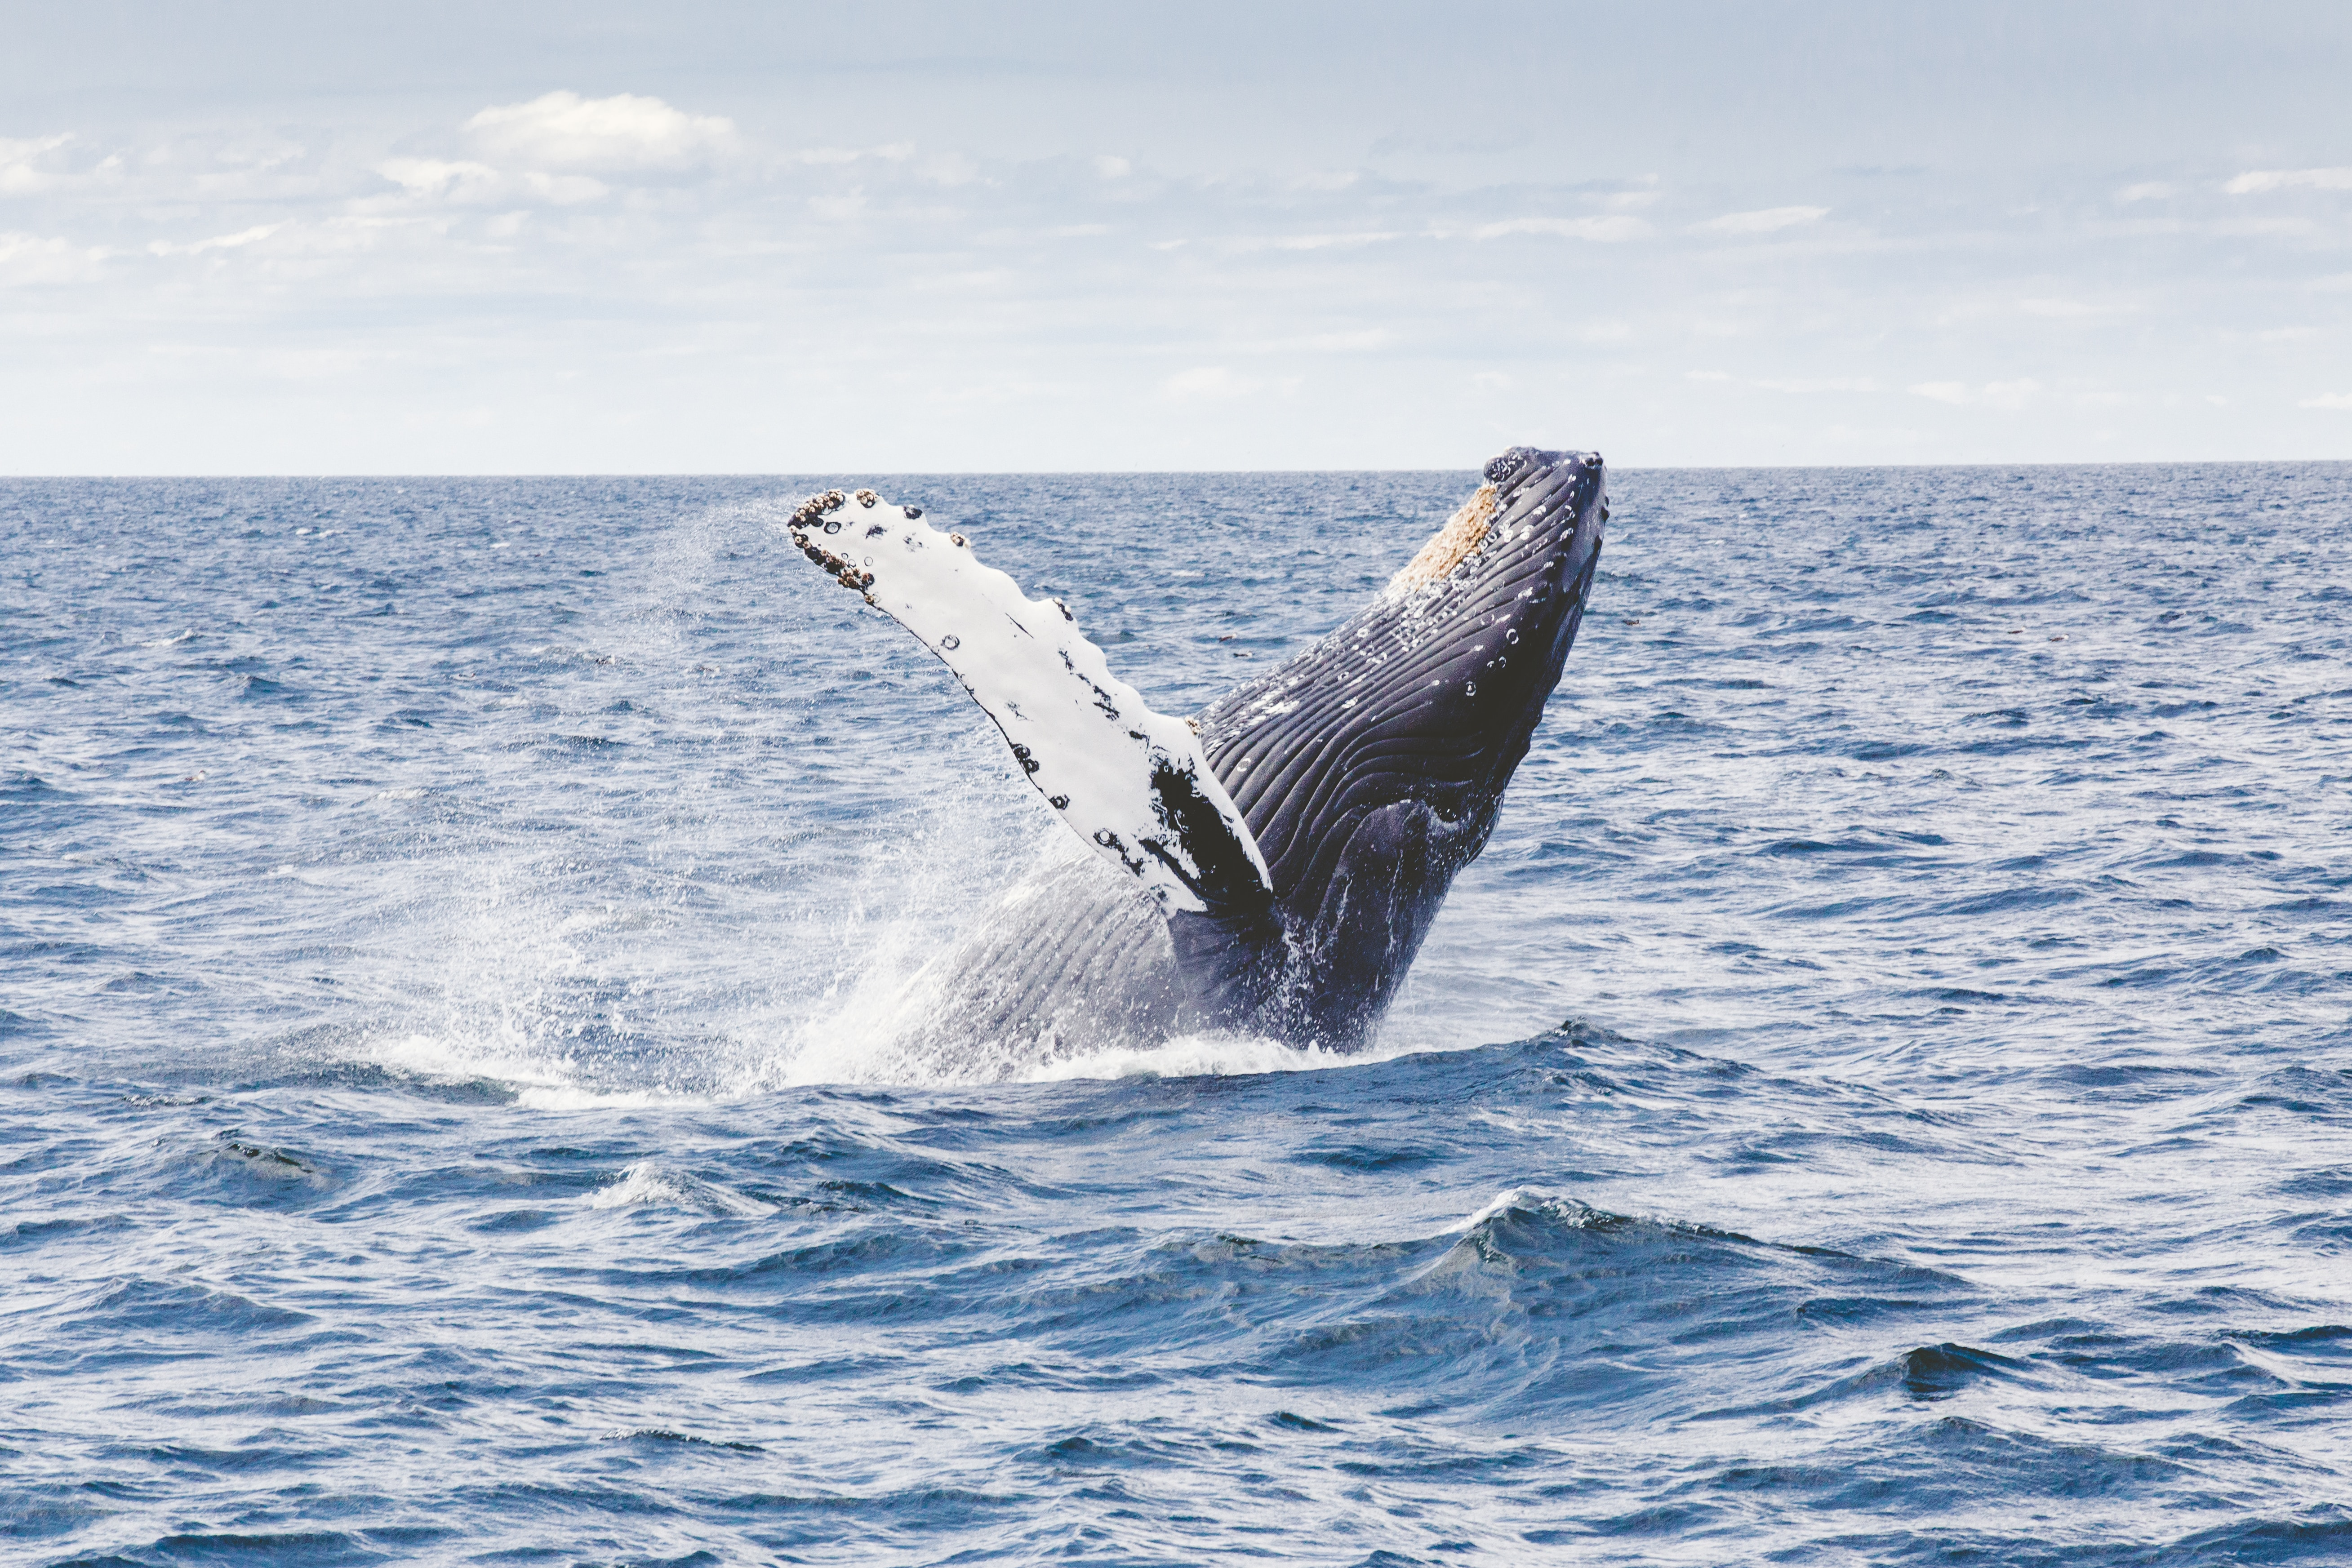 humpback whale jumping in water